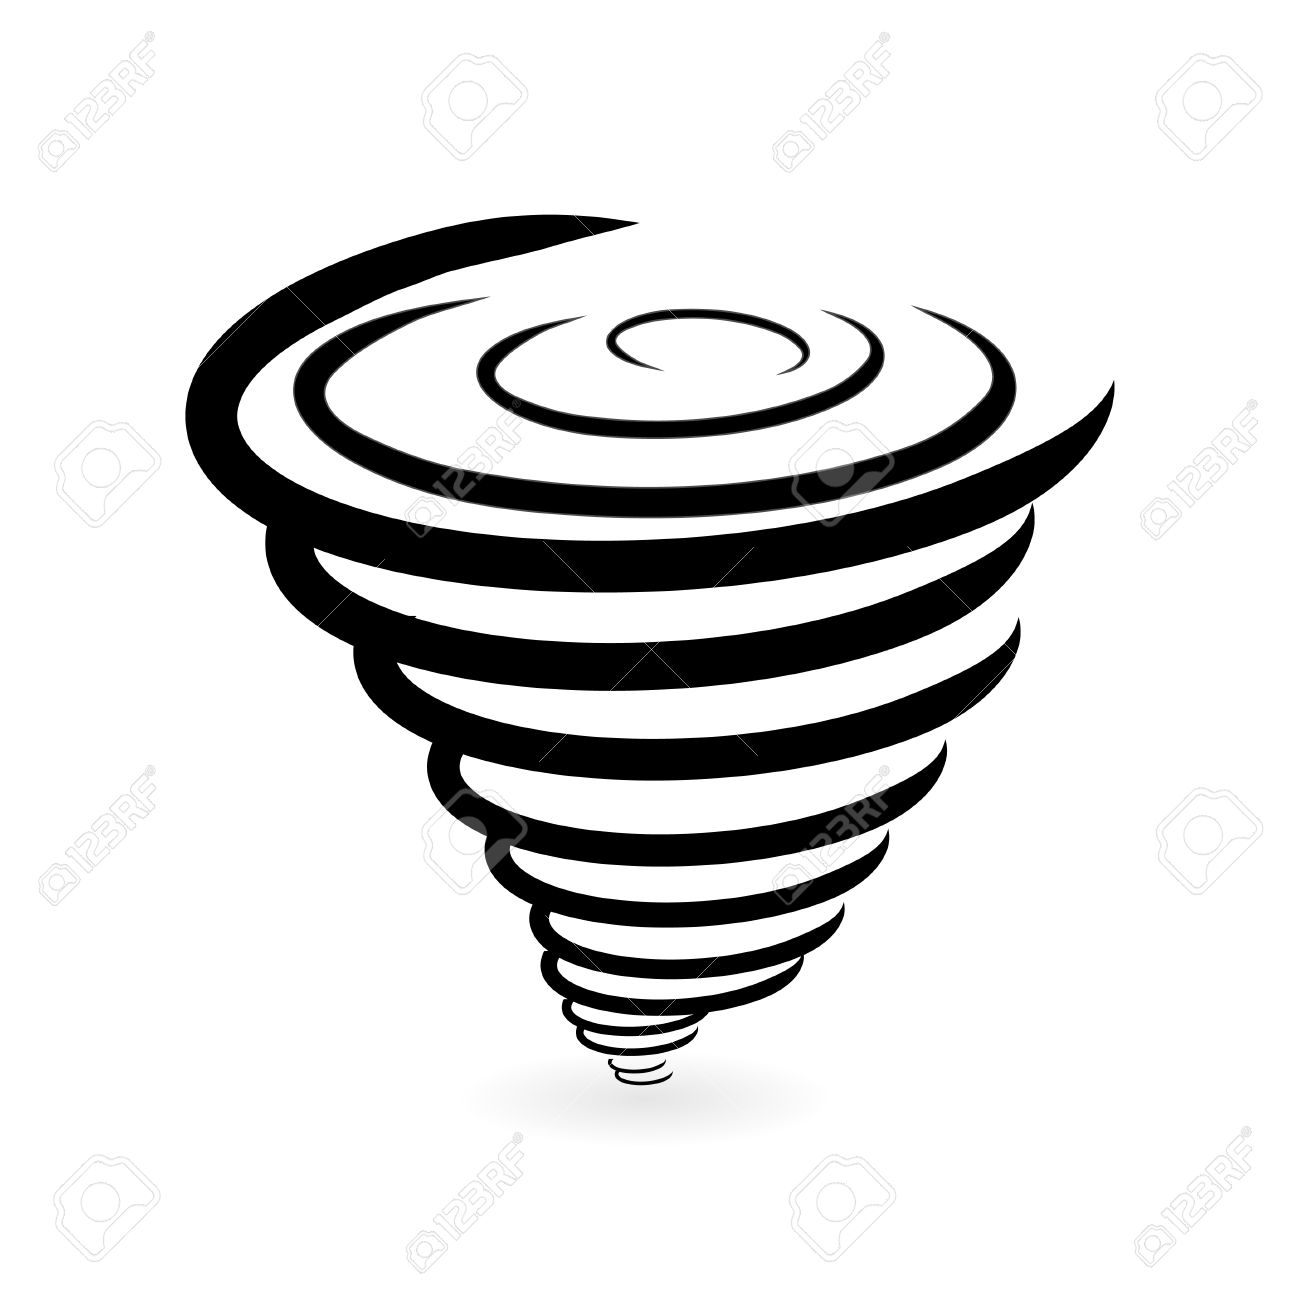 Hurricane icon stock photos royalty free business images tornado icon illustration biocorpaavc Images